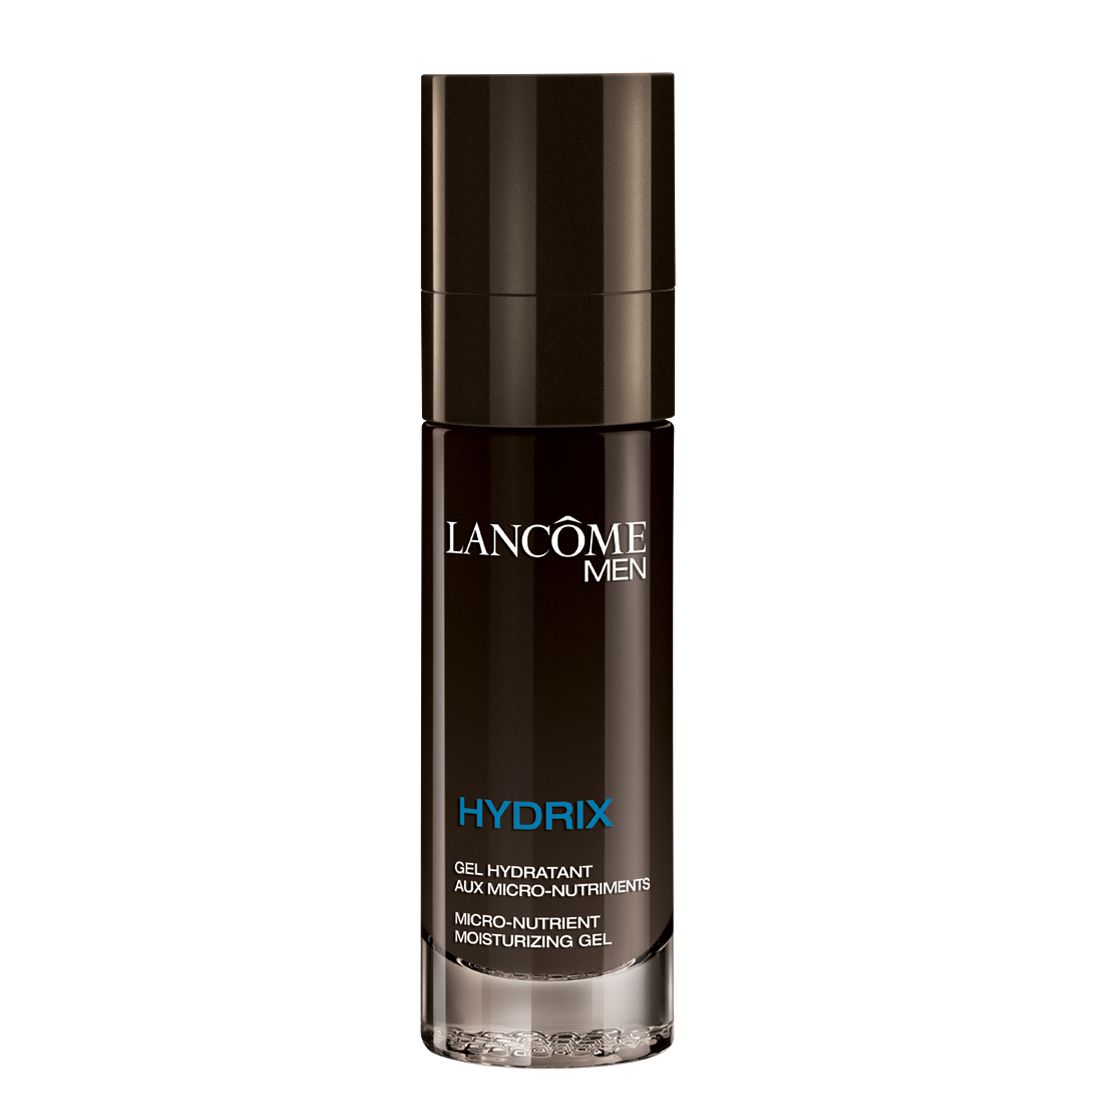 LANCOME MEN HYDRIX GEL IDRATANTE VISO 50 ML